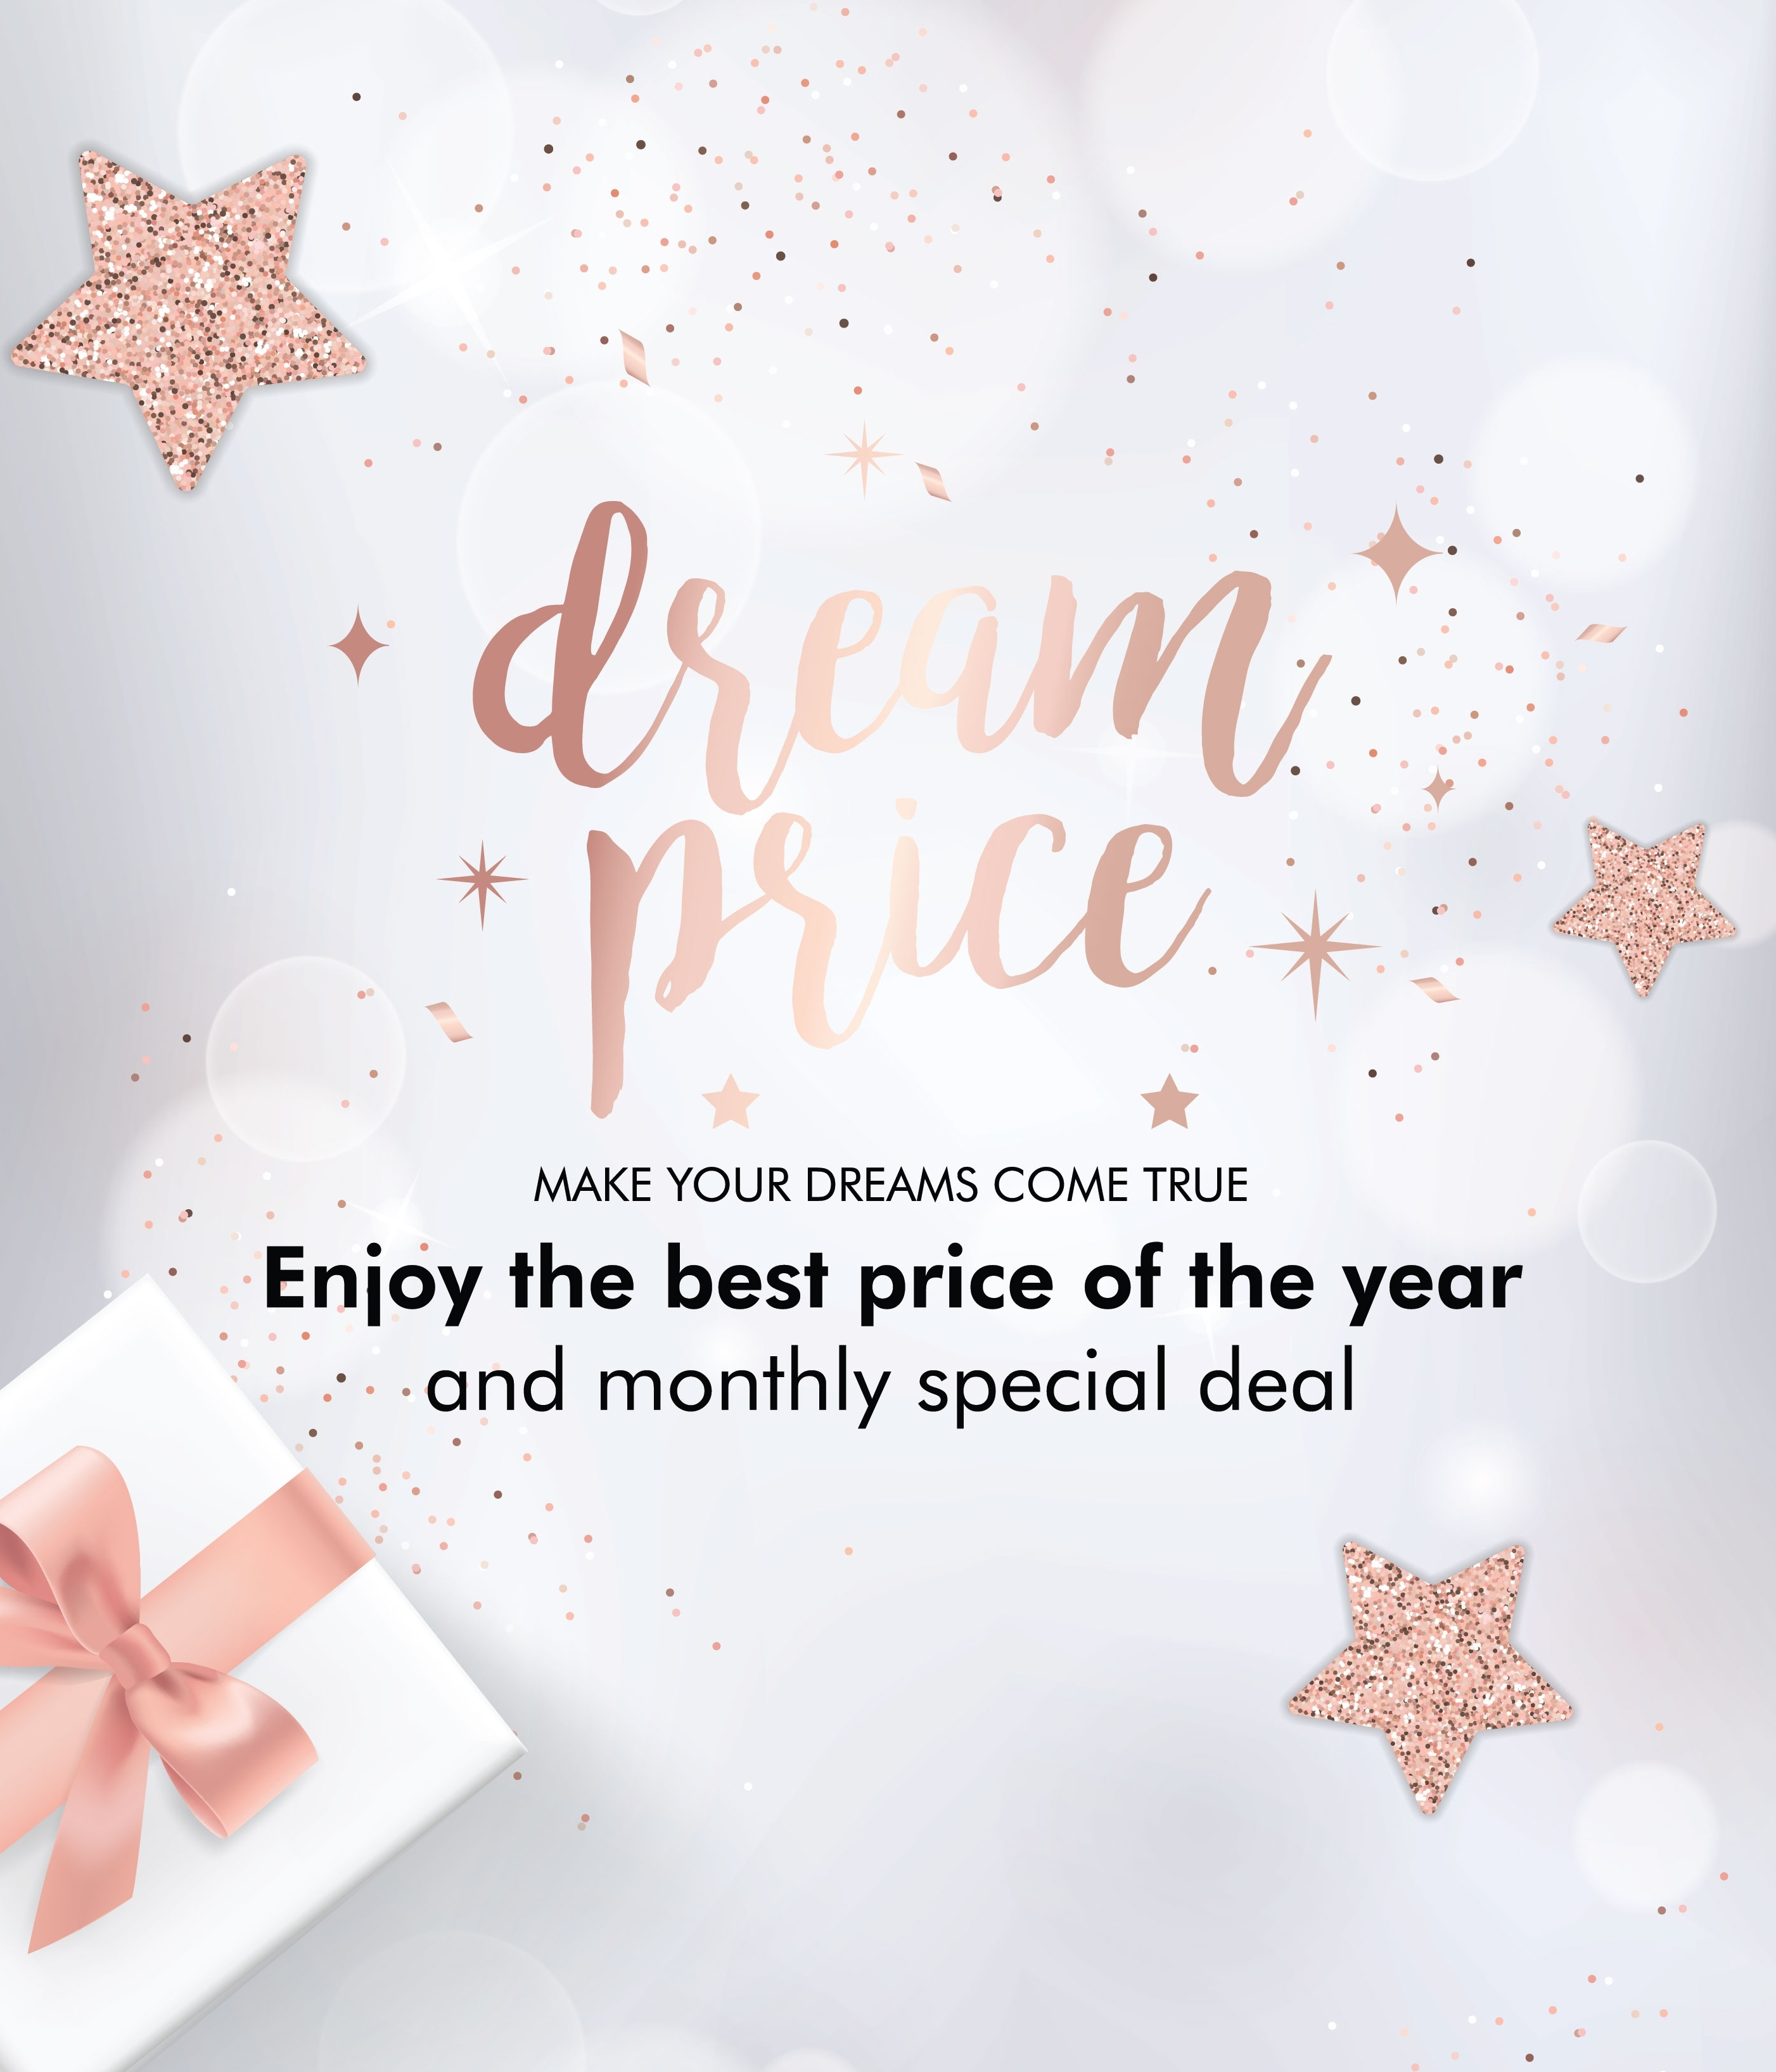 Smeg Dream Price 2019